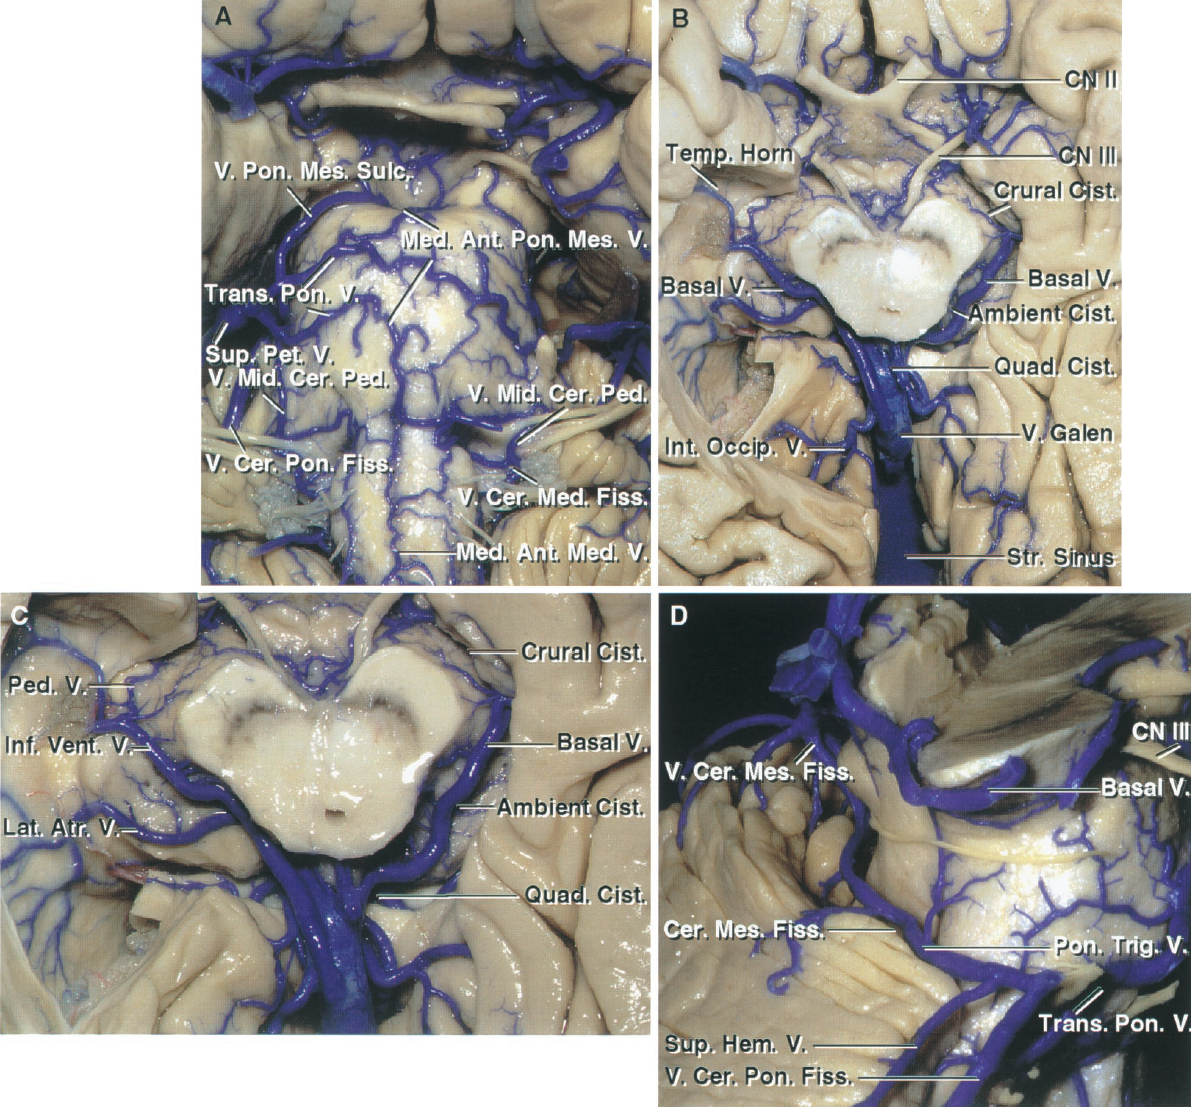 FIGURE 3.10. Upper brainstem. A, the veins on the anterior surface of the pons and medulla and the veins of the cerebellopontine fissure and their tributaries empty into the superior petrosal veins. The median anterior medullary vein and median anterior pontomesencephalic veins course in the midline, but often do not extend along the full length of the pons and medulla. The vein of the pontomesencephalic sulcus and the transverse pontine veins are transversely oriented. The veins of the cerebellomedullary fissure join the veins of the middle cerebellar peduncle, which ascends to join the veins of the cerebellopontine fissure. B, the veins in the crural and ambient cistern join the basal vein, which empties into the vein of Galen in the quadrigeminal cistern. The basal vein also drains the walls of the temporal horn, which has been opened on the right. An internal occipital vein passes from the calcarine sulcus and occipital lobe to the vein of Galen. C, enlarged view of the basal cisterns. The inferior ventricular vein from the temporal horn and the lateral atrial vein join the basal vein, which also drains the walls of the crural and ambient cisterns. The cerebellomesencephalic fissure, an inferior extension of the quadrigeminal cistern, is drained by tributaries of the vein of Galen. D, lateral view of the cerebellomesencephalic fissure. The veins in the medial portion of the cerebellomesencephalic fissure empty into the vein of Galen and those from the lateral part may join the superior petrosal veins. In this case, the vein of the cerebellomesencephalic fissure is small, resulting in most of the fissure's drainage being directed laterally through a pontotrigeminal vein, which passes above the trigeminal nerve to empty into a superior petrosal vein formed by a superior hemispheric and transverse pontine vein and the vein of the cerebellopontine fissure. Ant., anterior; Atr., atrial; Cer., cerebellar; Cer. Med., cerebellomedullary; Cer. Mes., cerebellomesencephalic; Cist., cistern; CN, cranial nerve; Fiss., fissure; Hem., hemispheric; Int., internal; Lat., lateral; Med., median, medullary; Mes., mesencephalic; Mid., middle; Occip., occipital; Ped., peduncle; Pet., petrosal; Pon., pontine, ponto; Quad., quadrigeminal; Str., straight; Sulc., sulcus; Sup., superior; Temp., temporal; Trans., transverse; Trig., trigeminal; V., vein; Vent., ventricle.